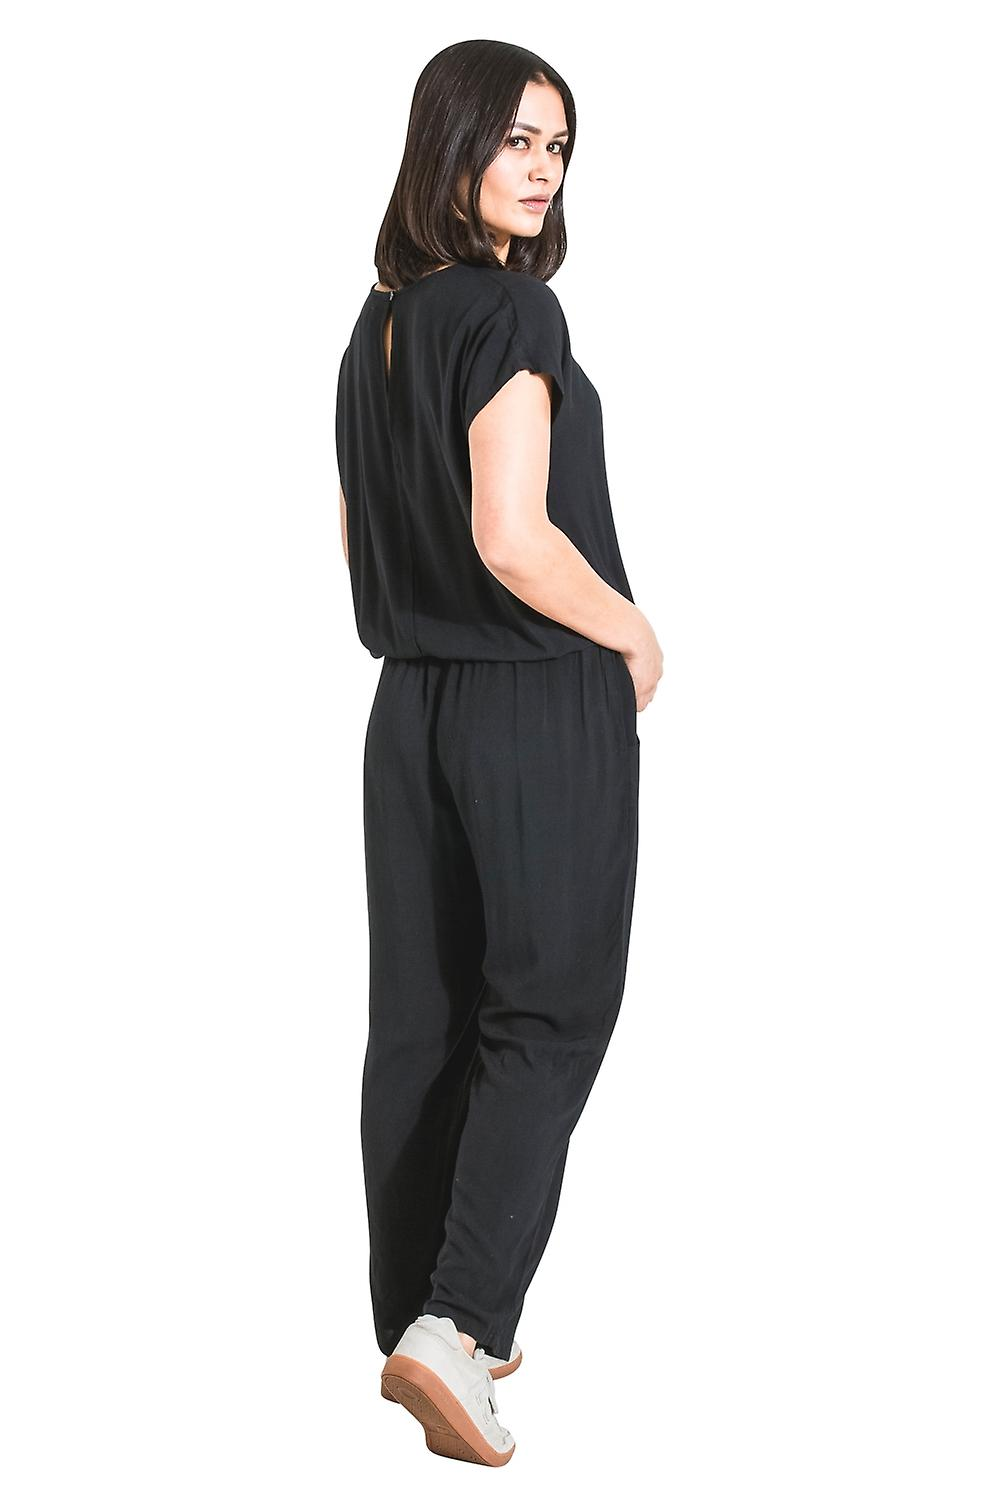 b39c87fd7b82 Ladies Jumpsuit with short sleeve - Black Loose Fit All-in-one Playsuit